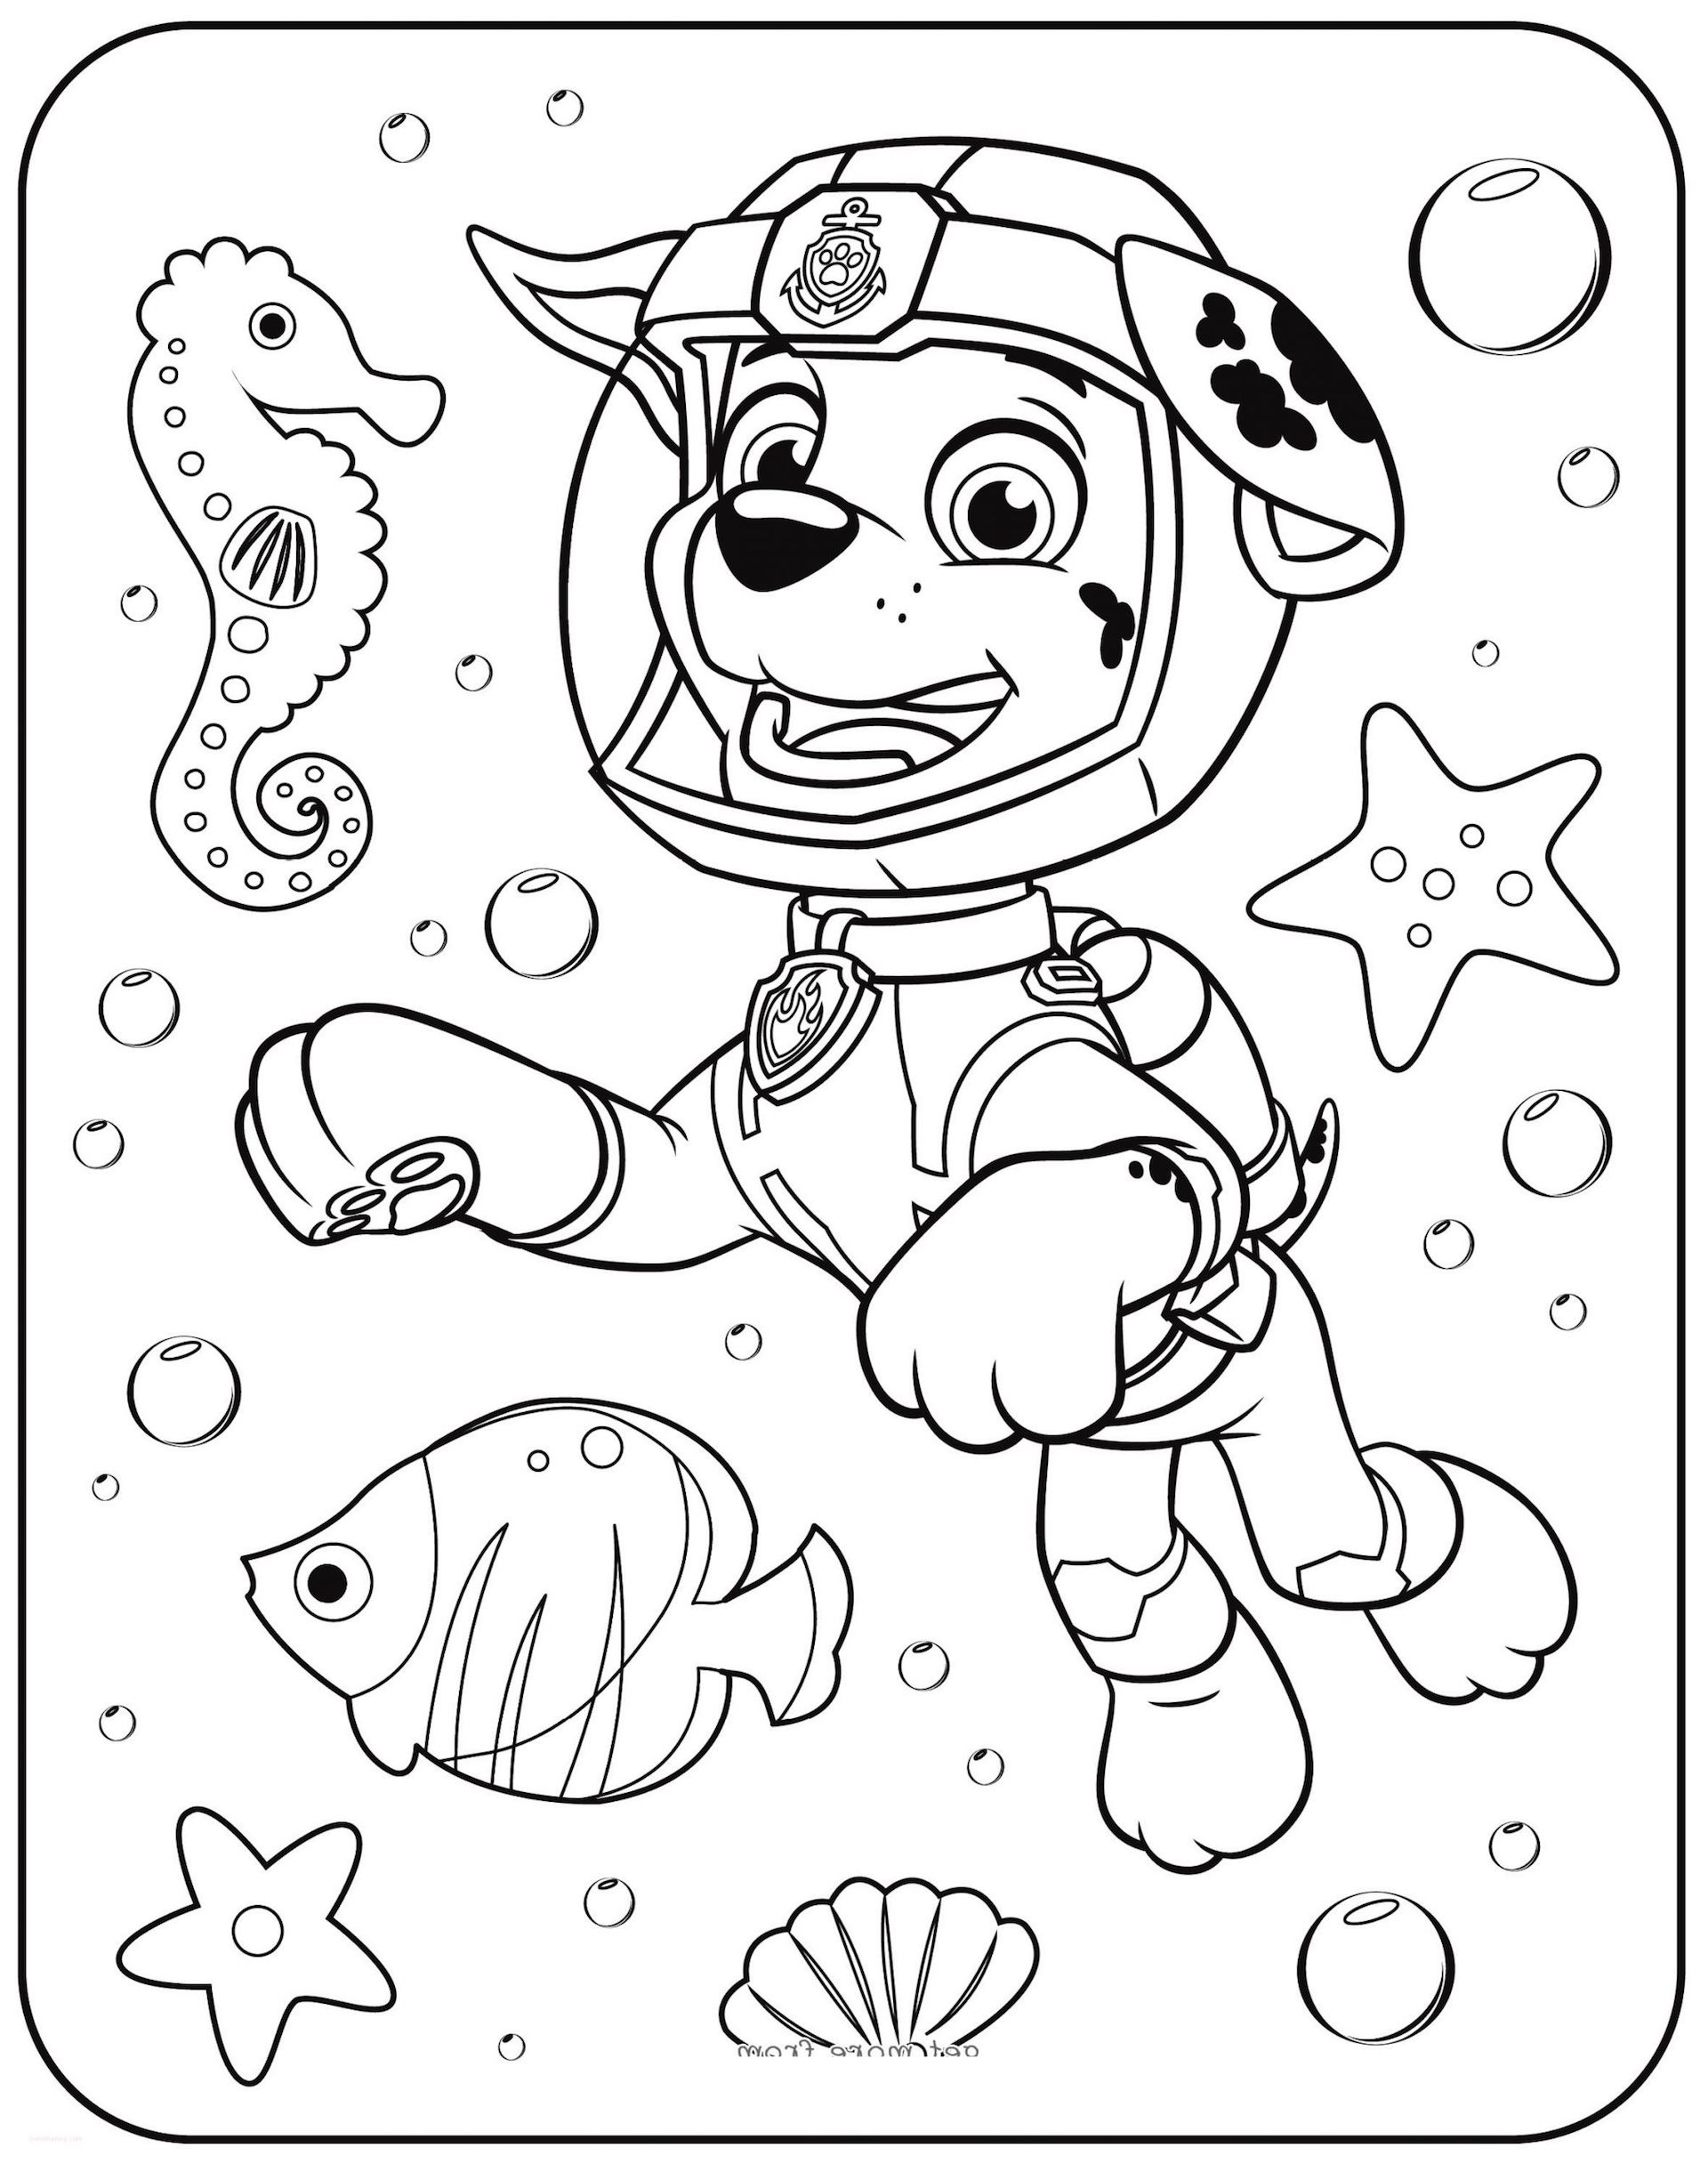 Paw Patrol Coloring Pages And Dozens More Top 10 Coloring ...